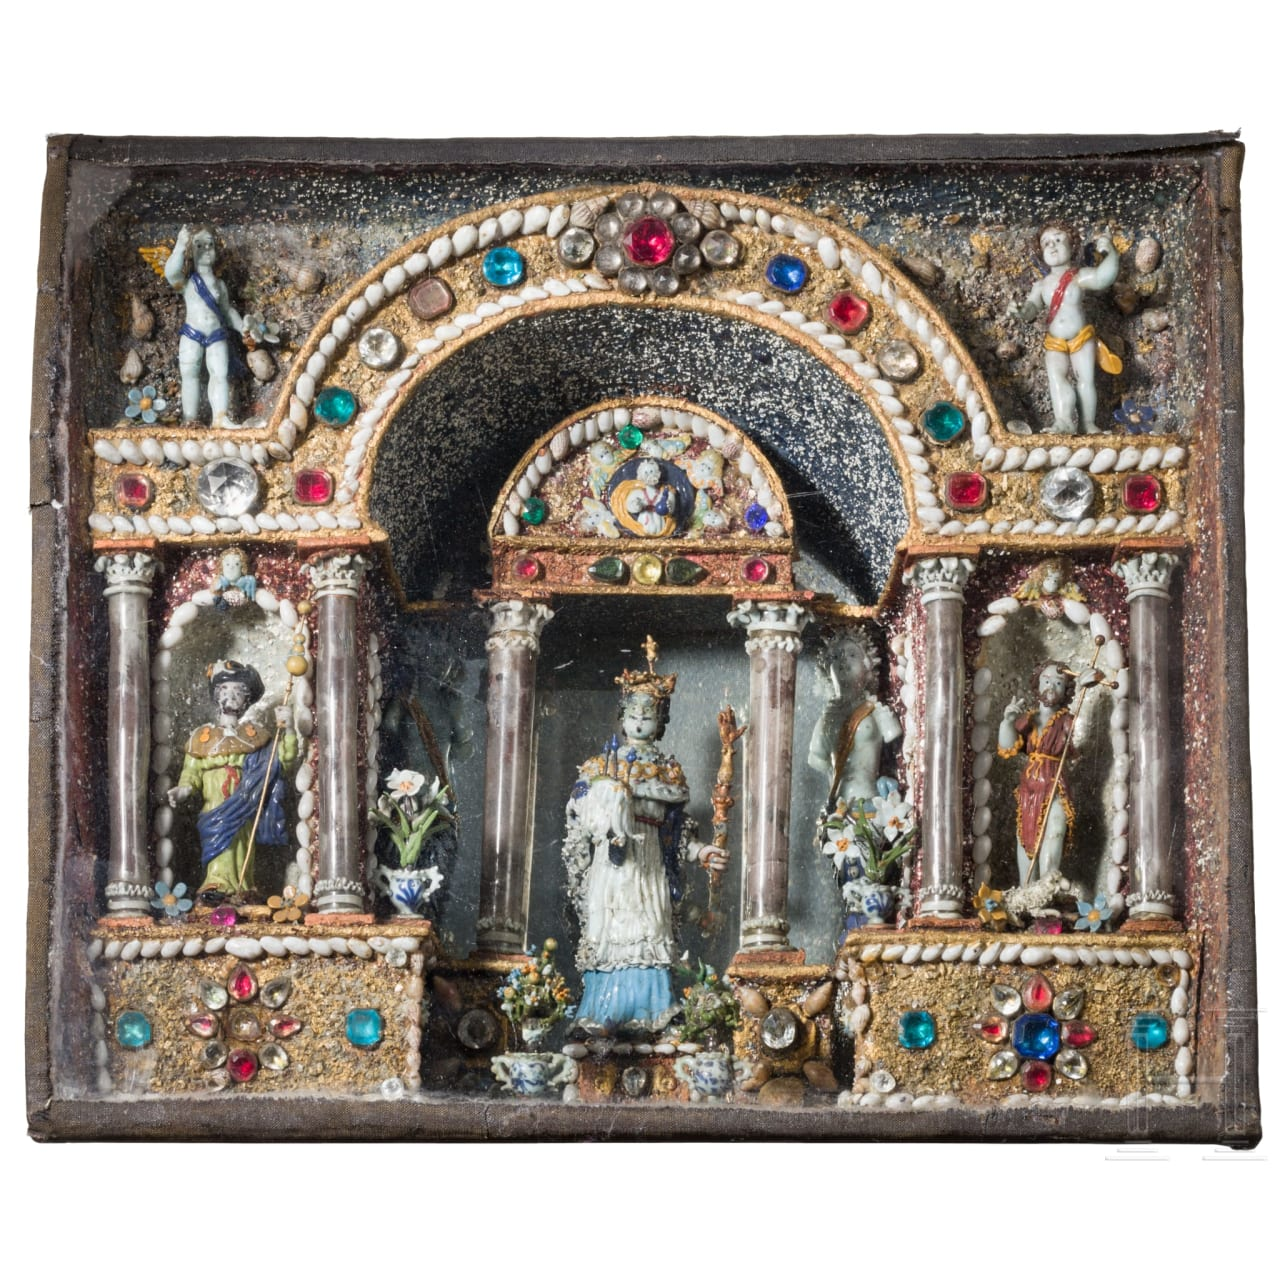 A rare French Louis XIII house altar of glass, Nevers, circa 1630